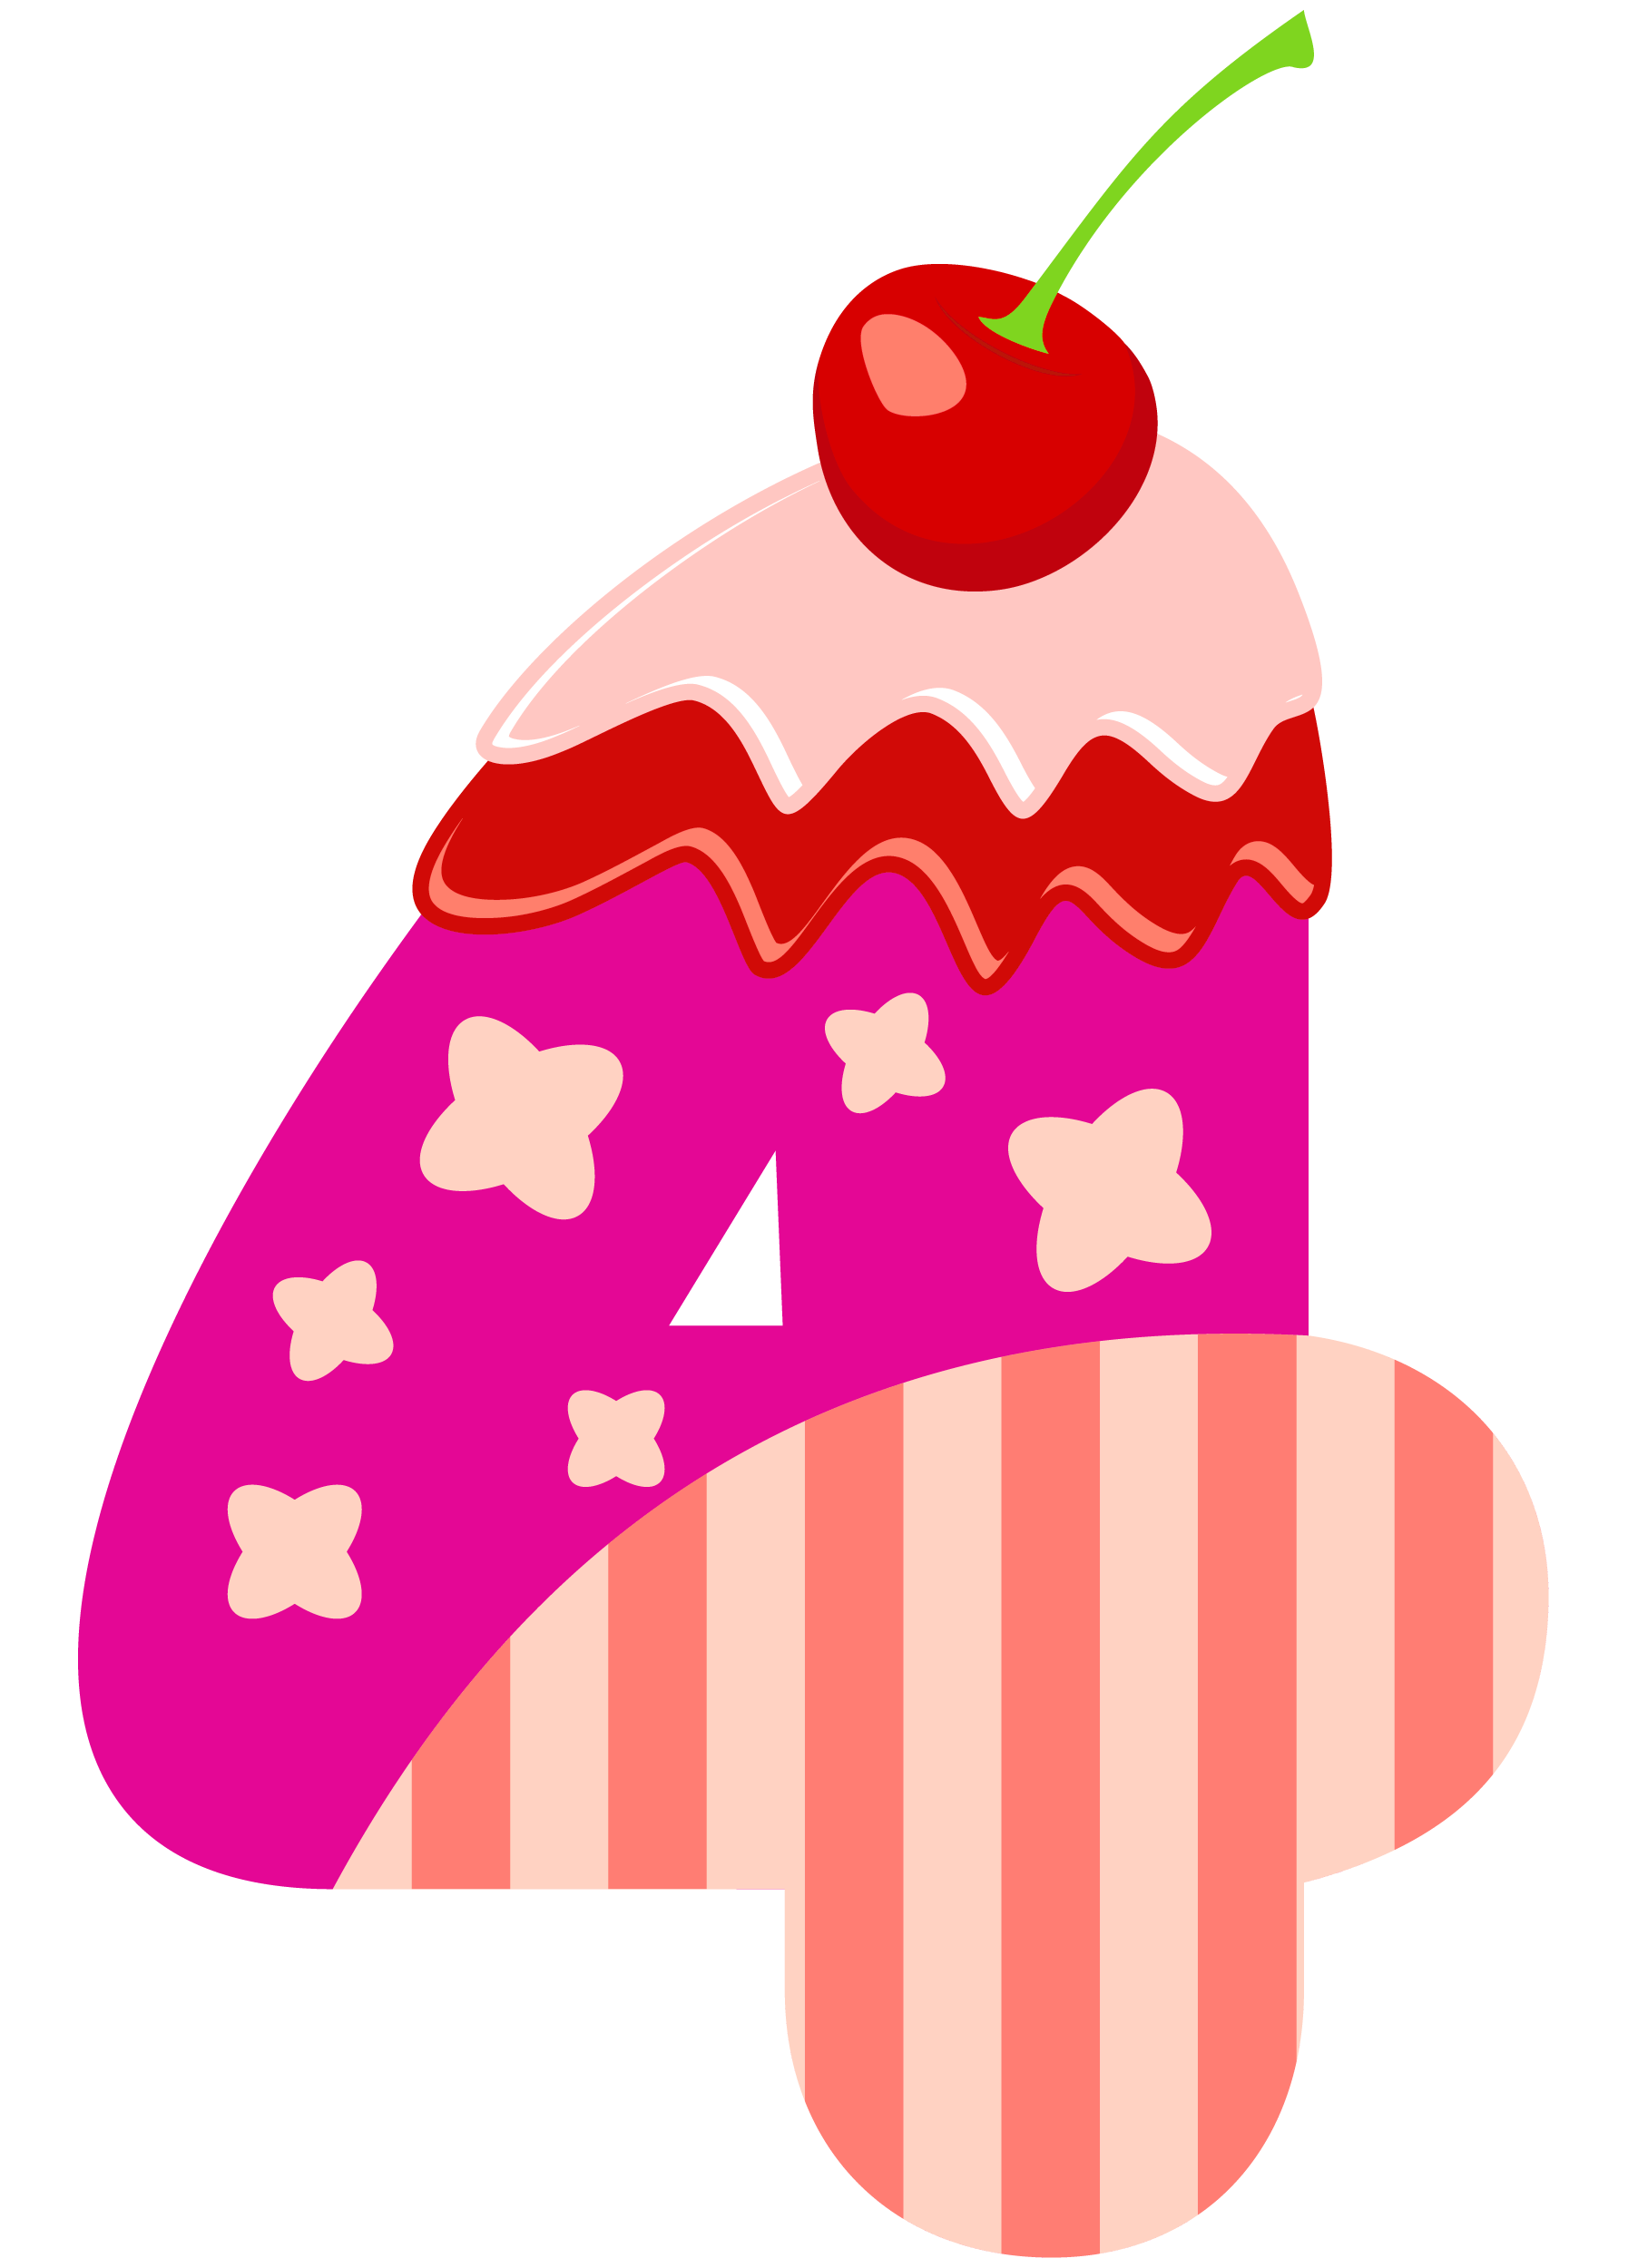 Clipart bow four. Sweet number png image